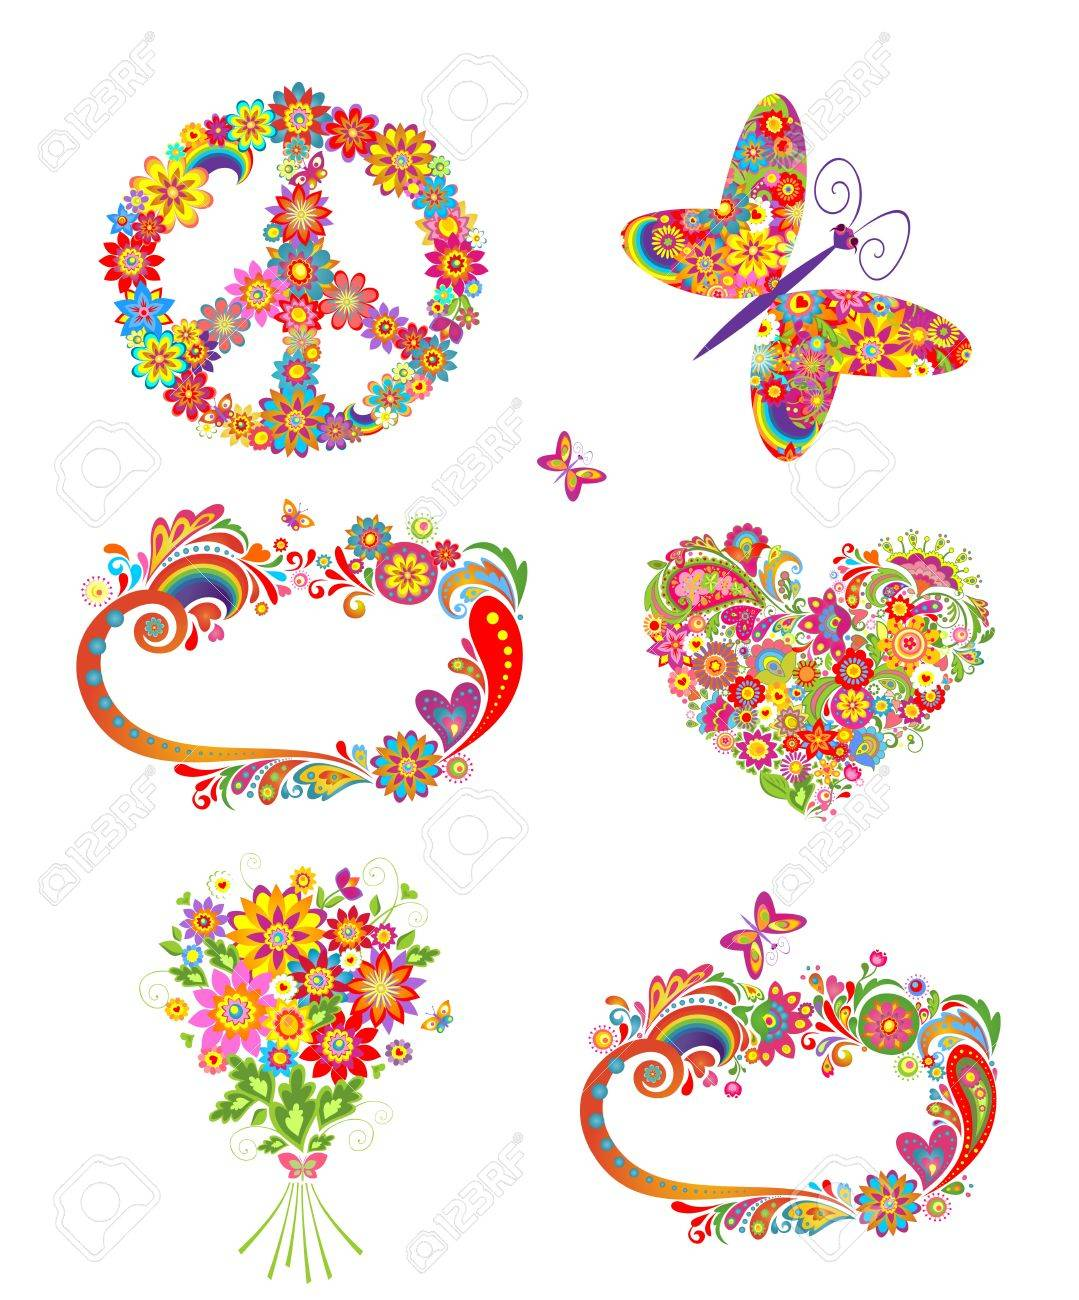 Fiori Hippie.Flowers Greetings And Hippie Elements Royalty Free Cliparts